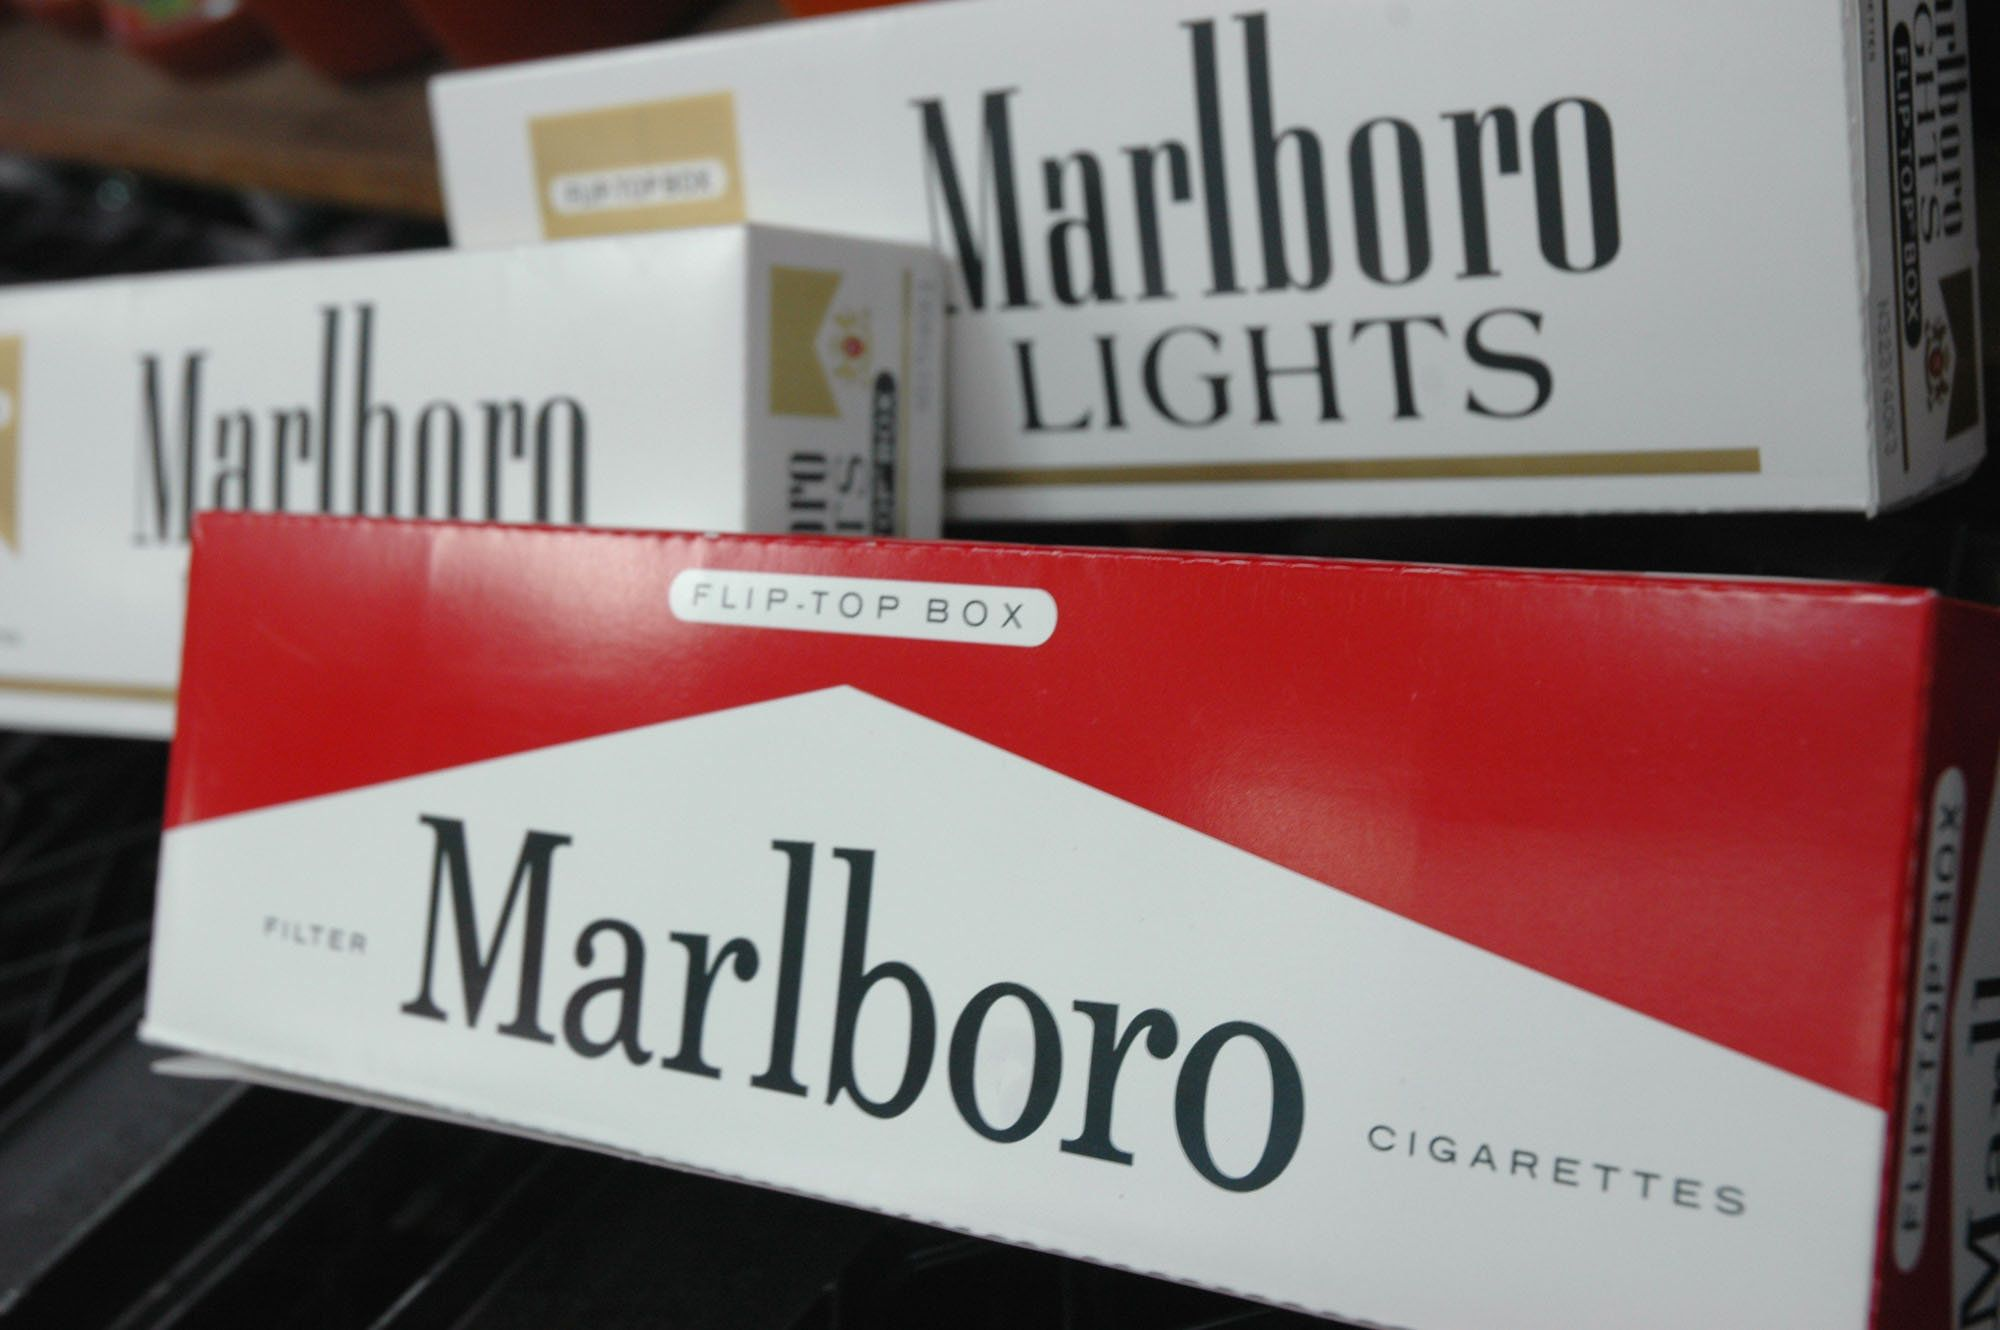 NJ cigarettes Marlboro minimum price